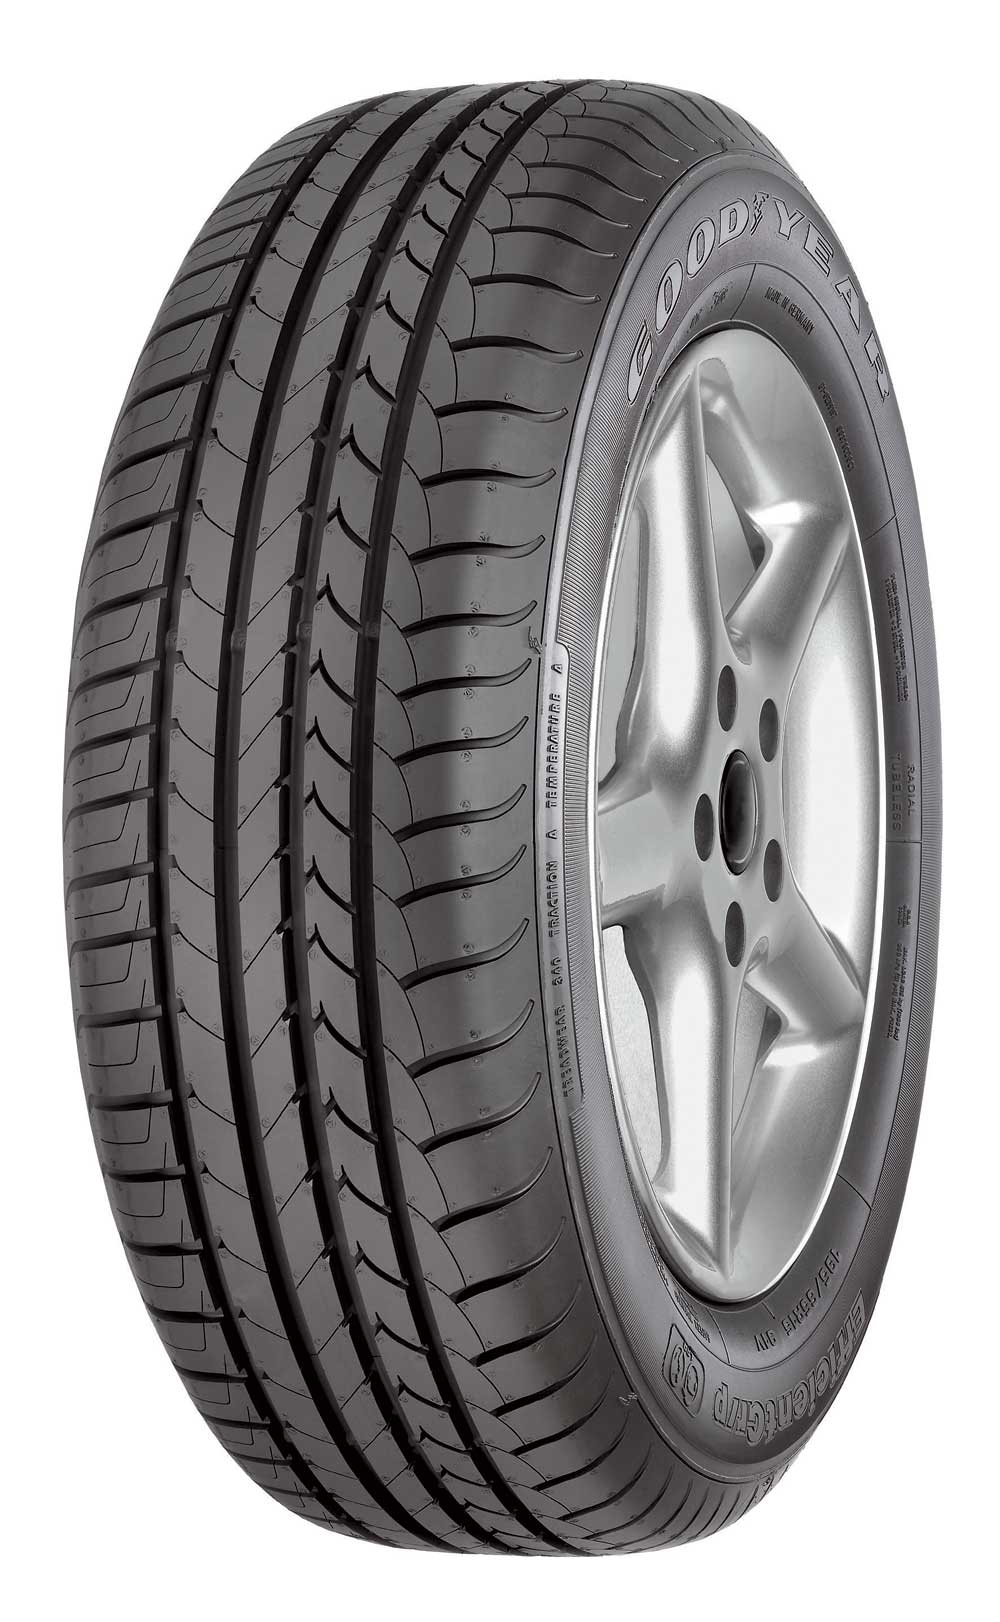 215/55 R16 [93] H EFFICIENTGRIP - GOODYEAR